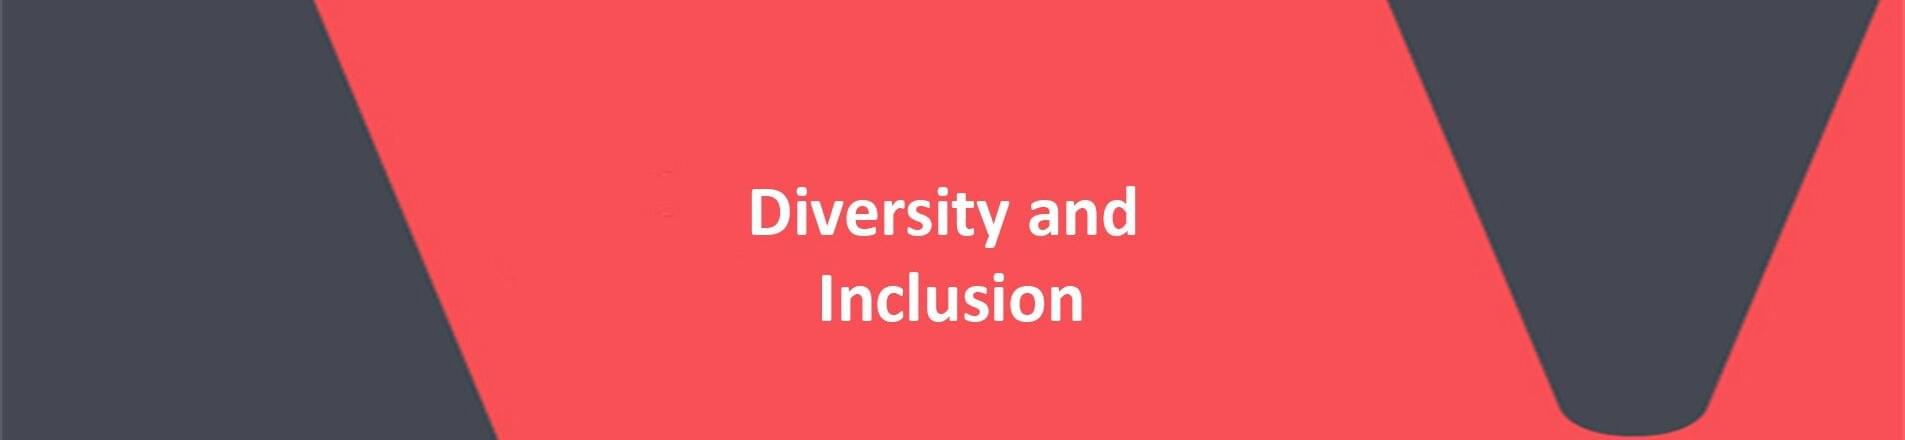 The words 'Diversity & Inclusion' on red VERCIDA background